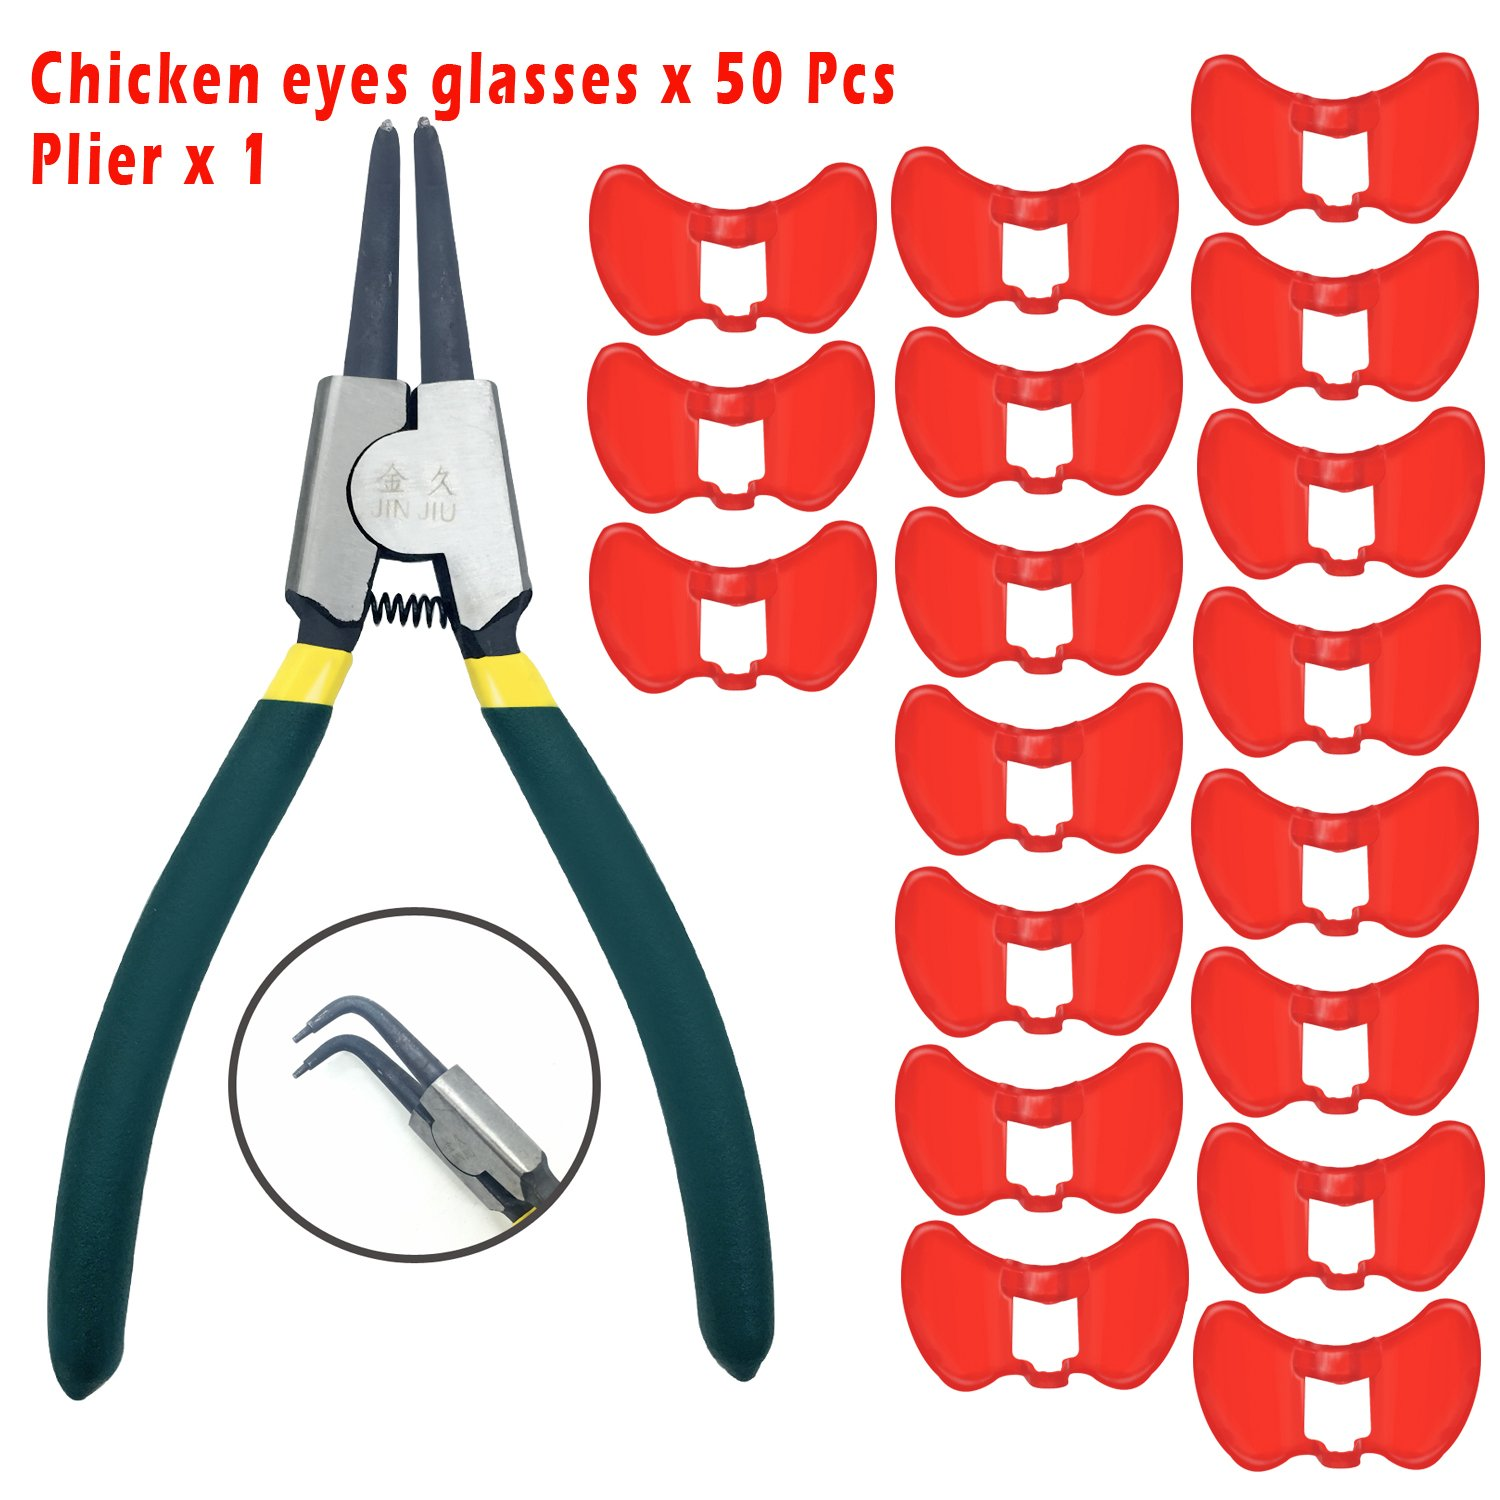 MMonDod 50Pcs Plastic Chicken Pinless Peepers with Plier Poultry Eye Glasses Blinders Spectacles Anti-Pecking Goggles Tool Professional Chicken Raising Equipment